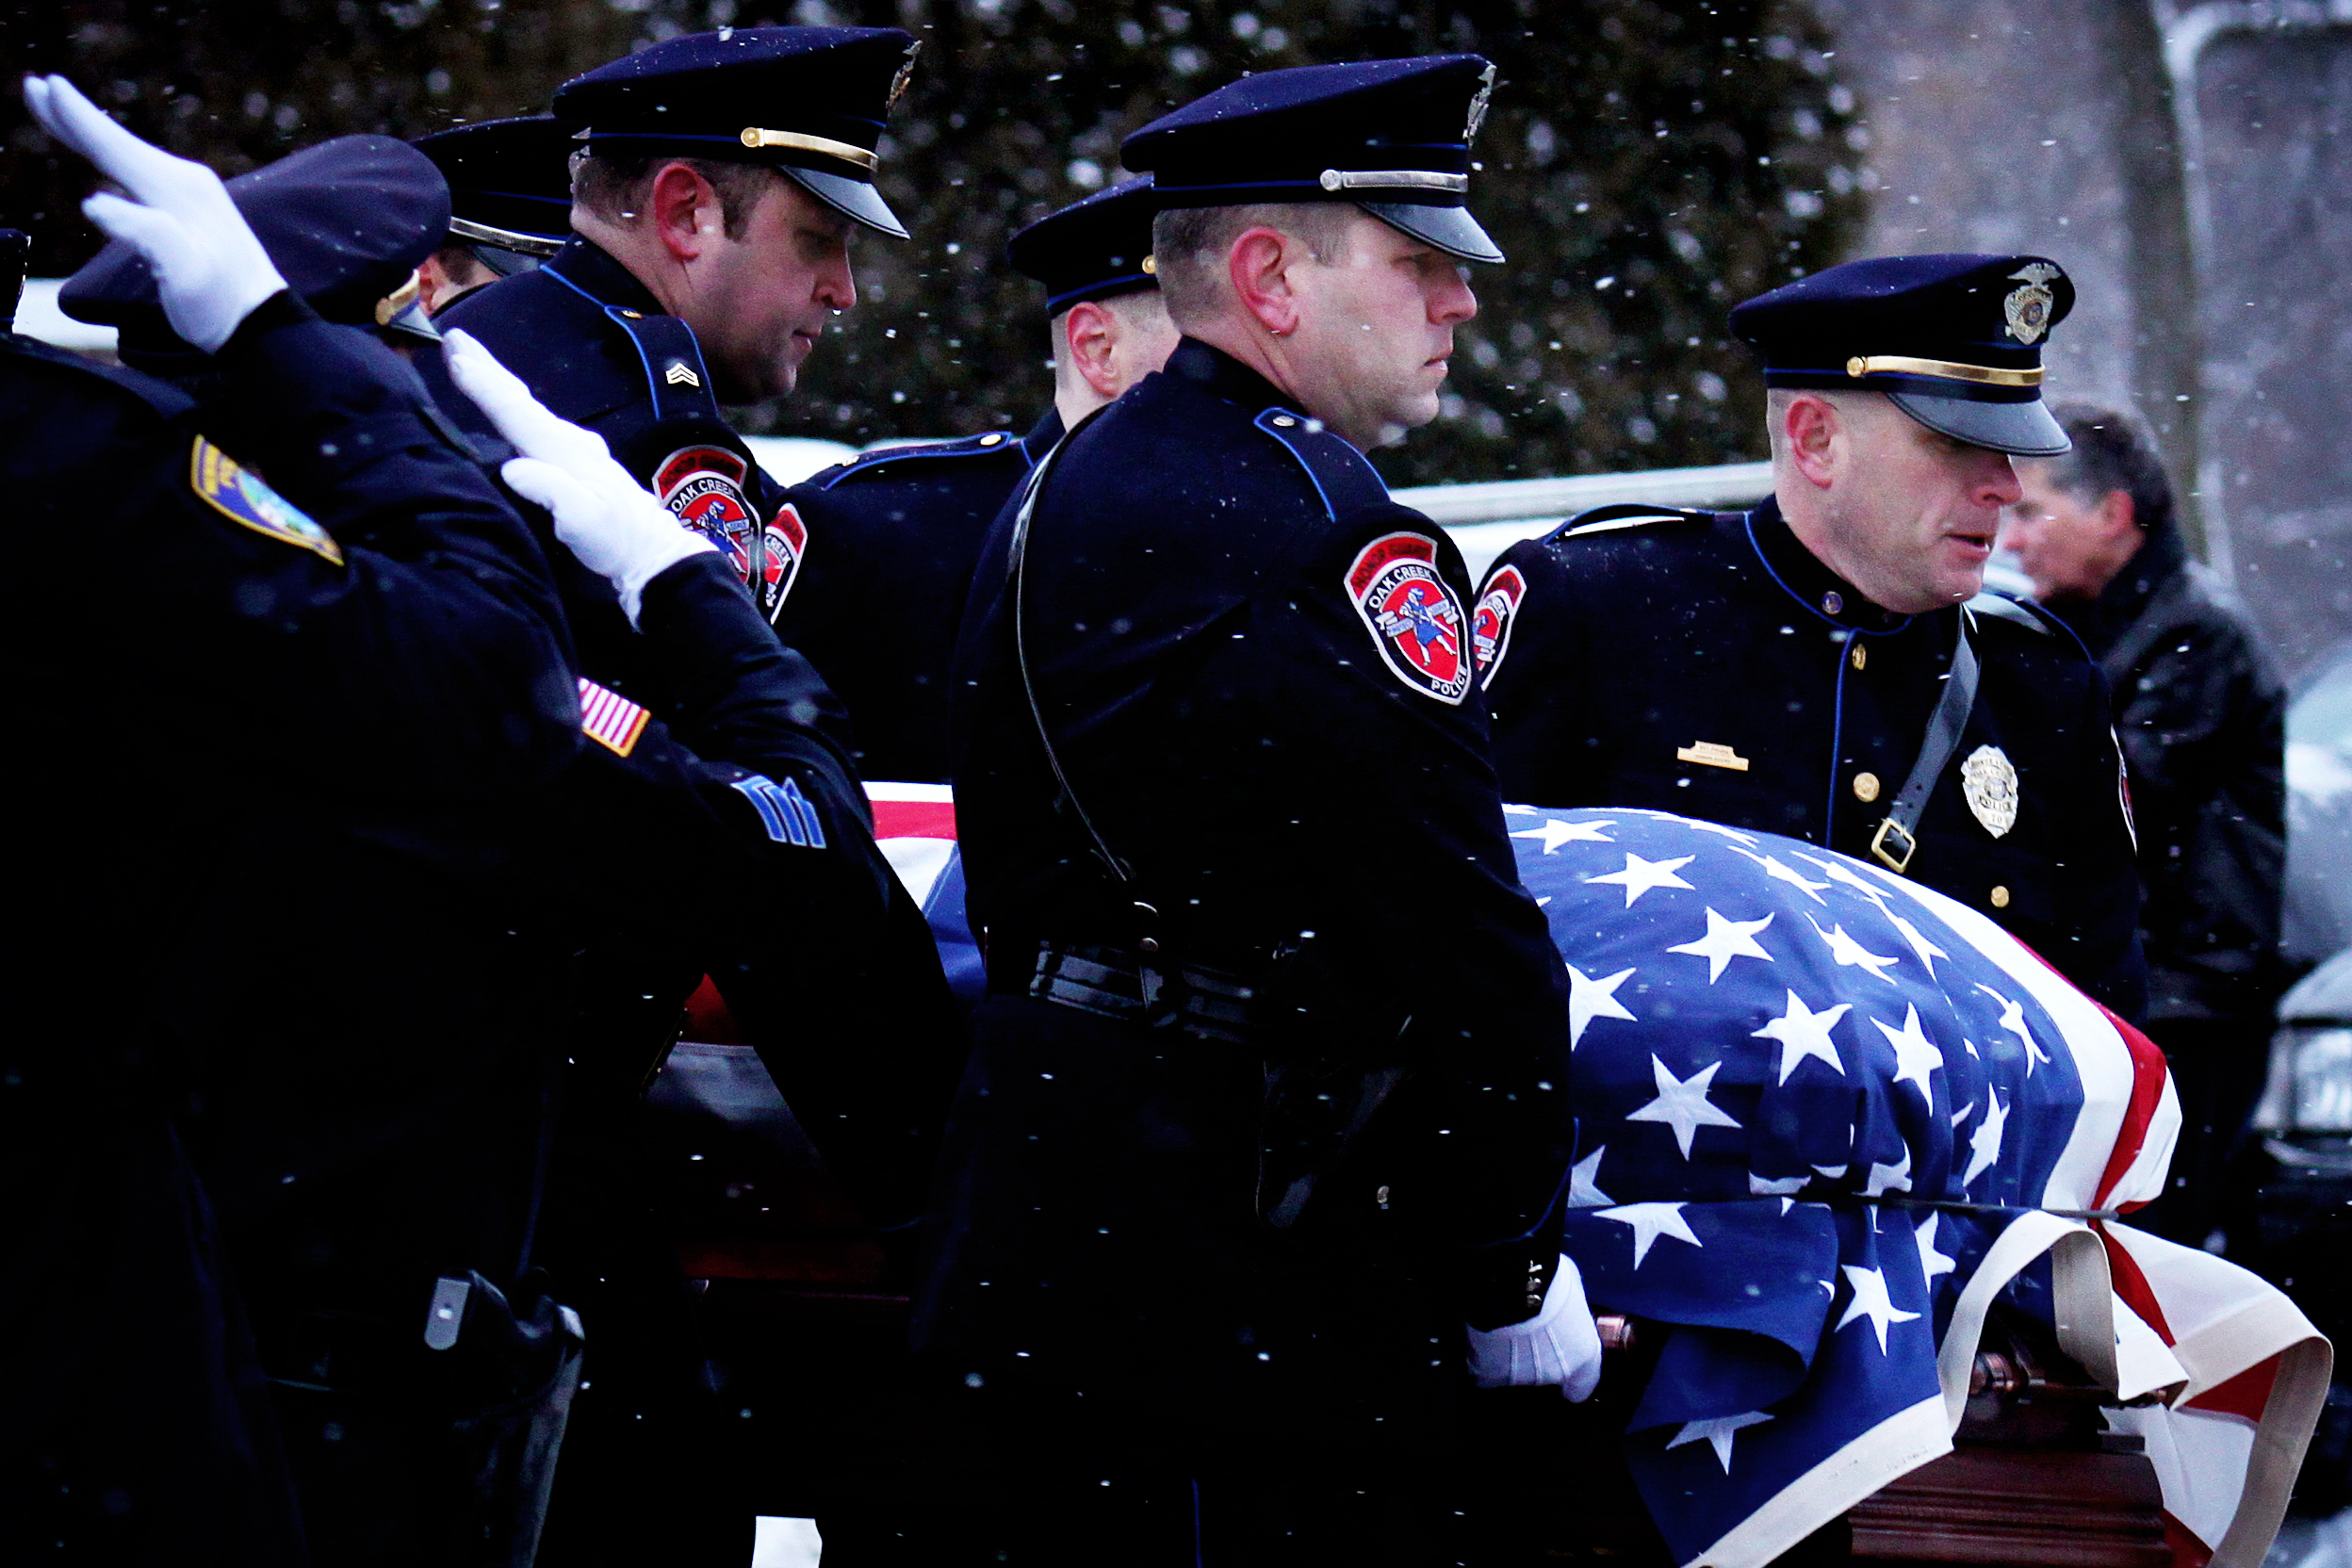 The Oak Creek Police Department Honor Guard carries the casket of Jennifer Sebena to her final resting place at Wisconsin Memorial Park in Brookfield, Wisconsin, on December 29, 2012. Wauwatosa Police Officer Jennifer Sebena was shot and killed by her husband, Benjamin Sebena, while on duty Christmas Eve.